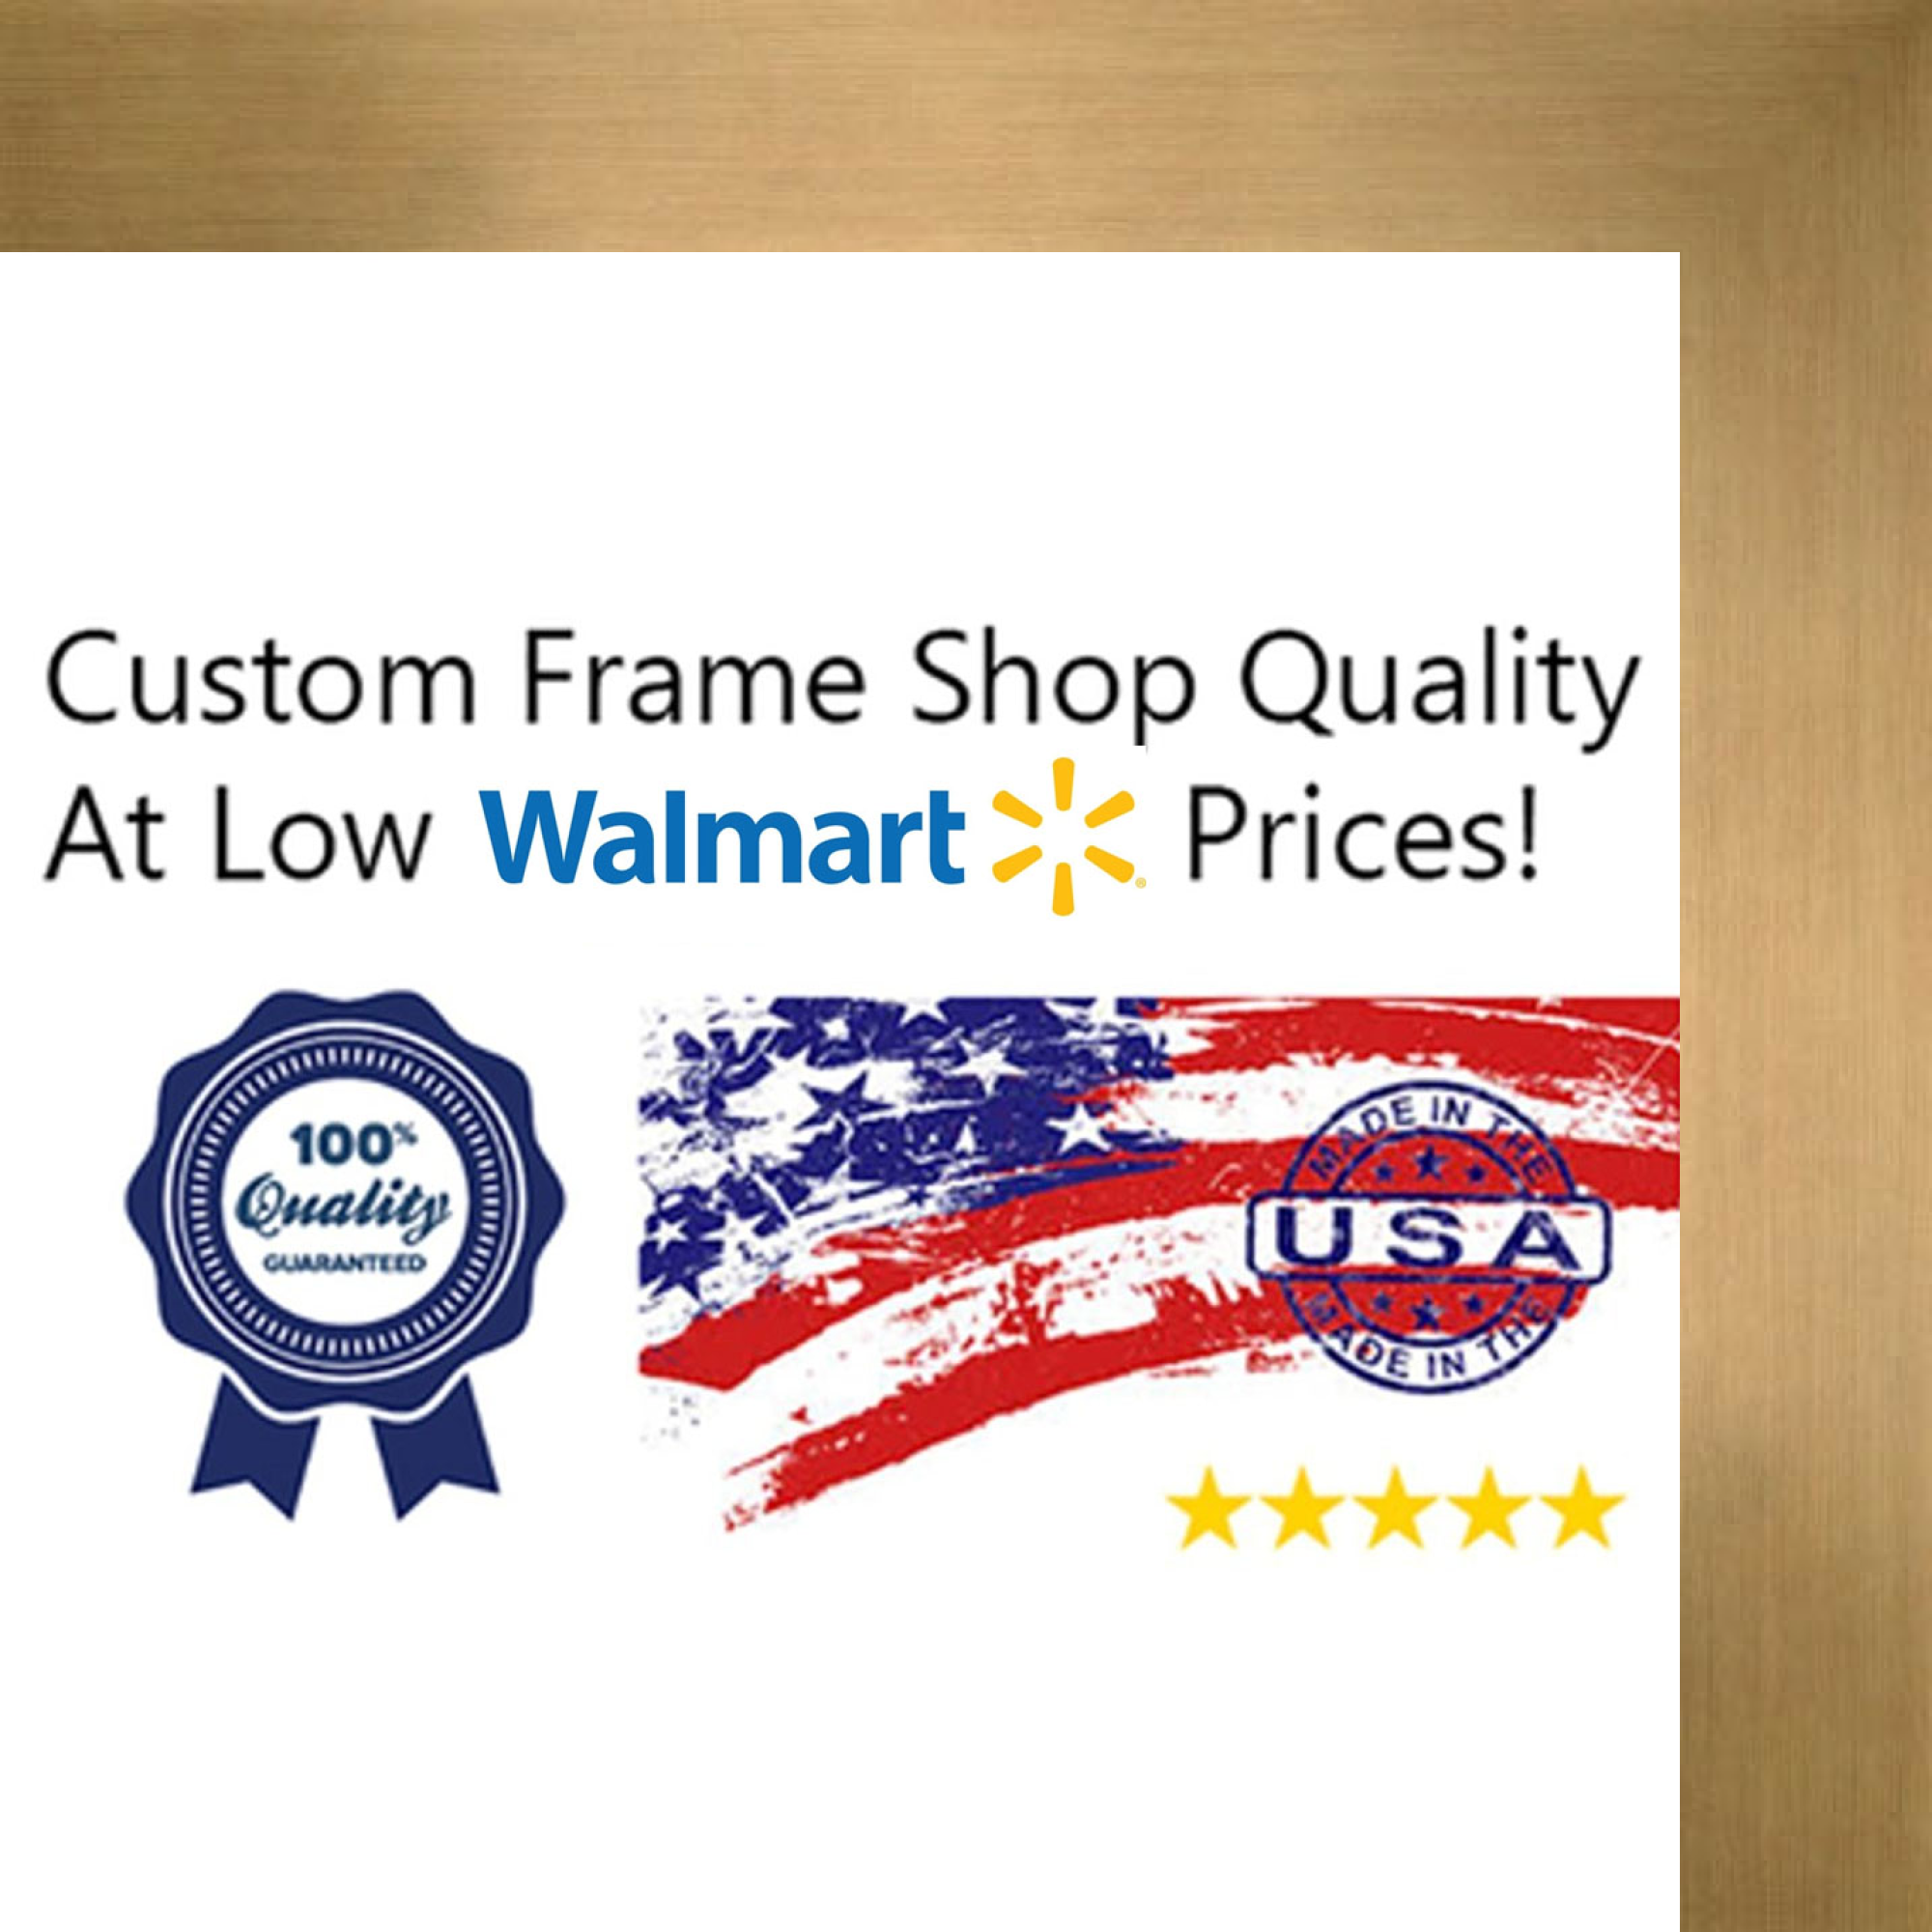 14x18 Brown Metallic Wood Frame - 'Brushed Steel' Wide - Great for Posters, Photos, Art Prints, Mirror, Chalk Board